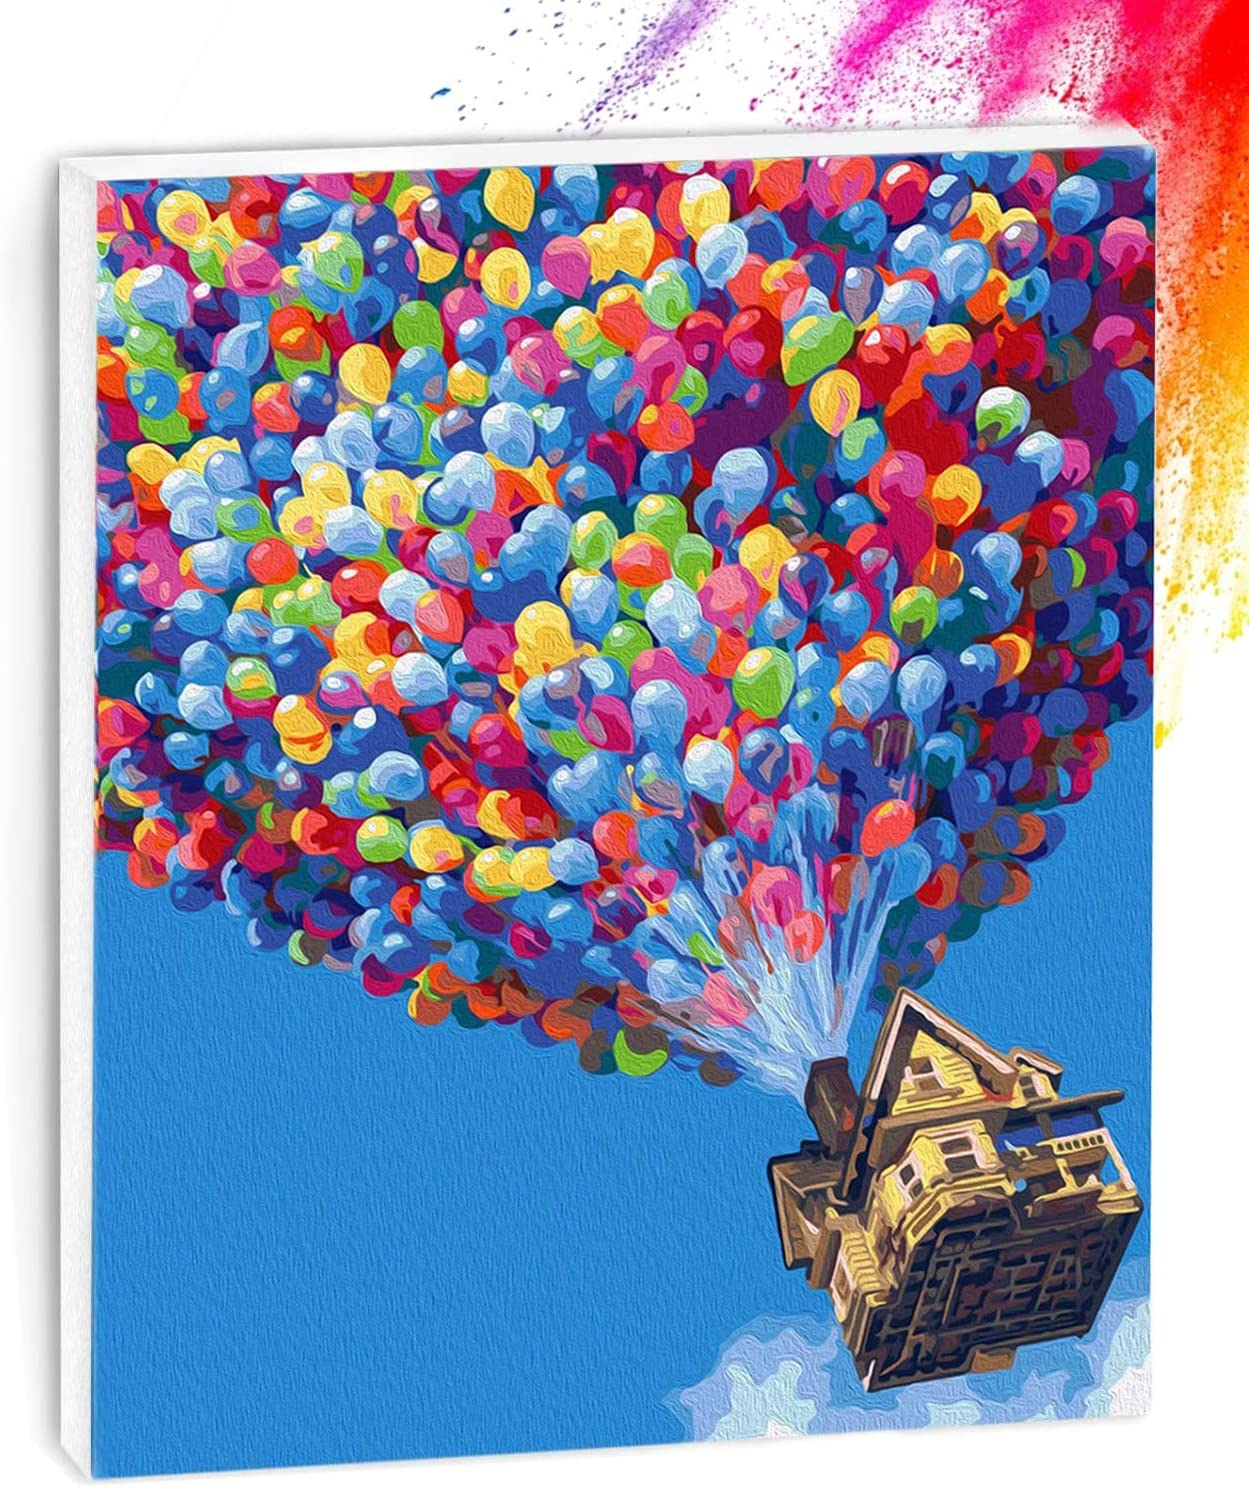 Paint by Numbers for Adults 16 x 20 inch DIY Canvas Oil Painting Kit with Paintbrushes and Acrylic Pigment-Colorful Balloon